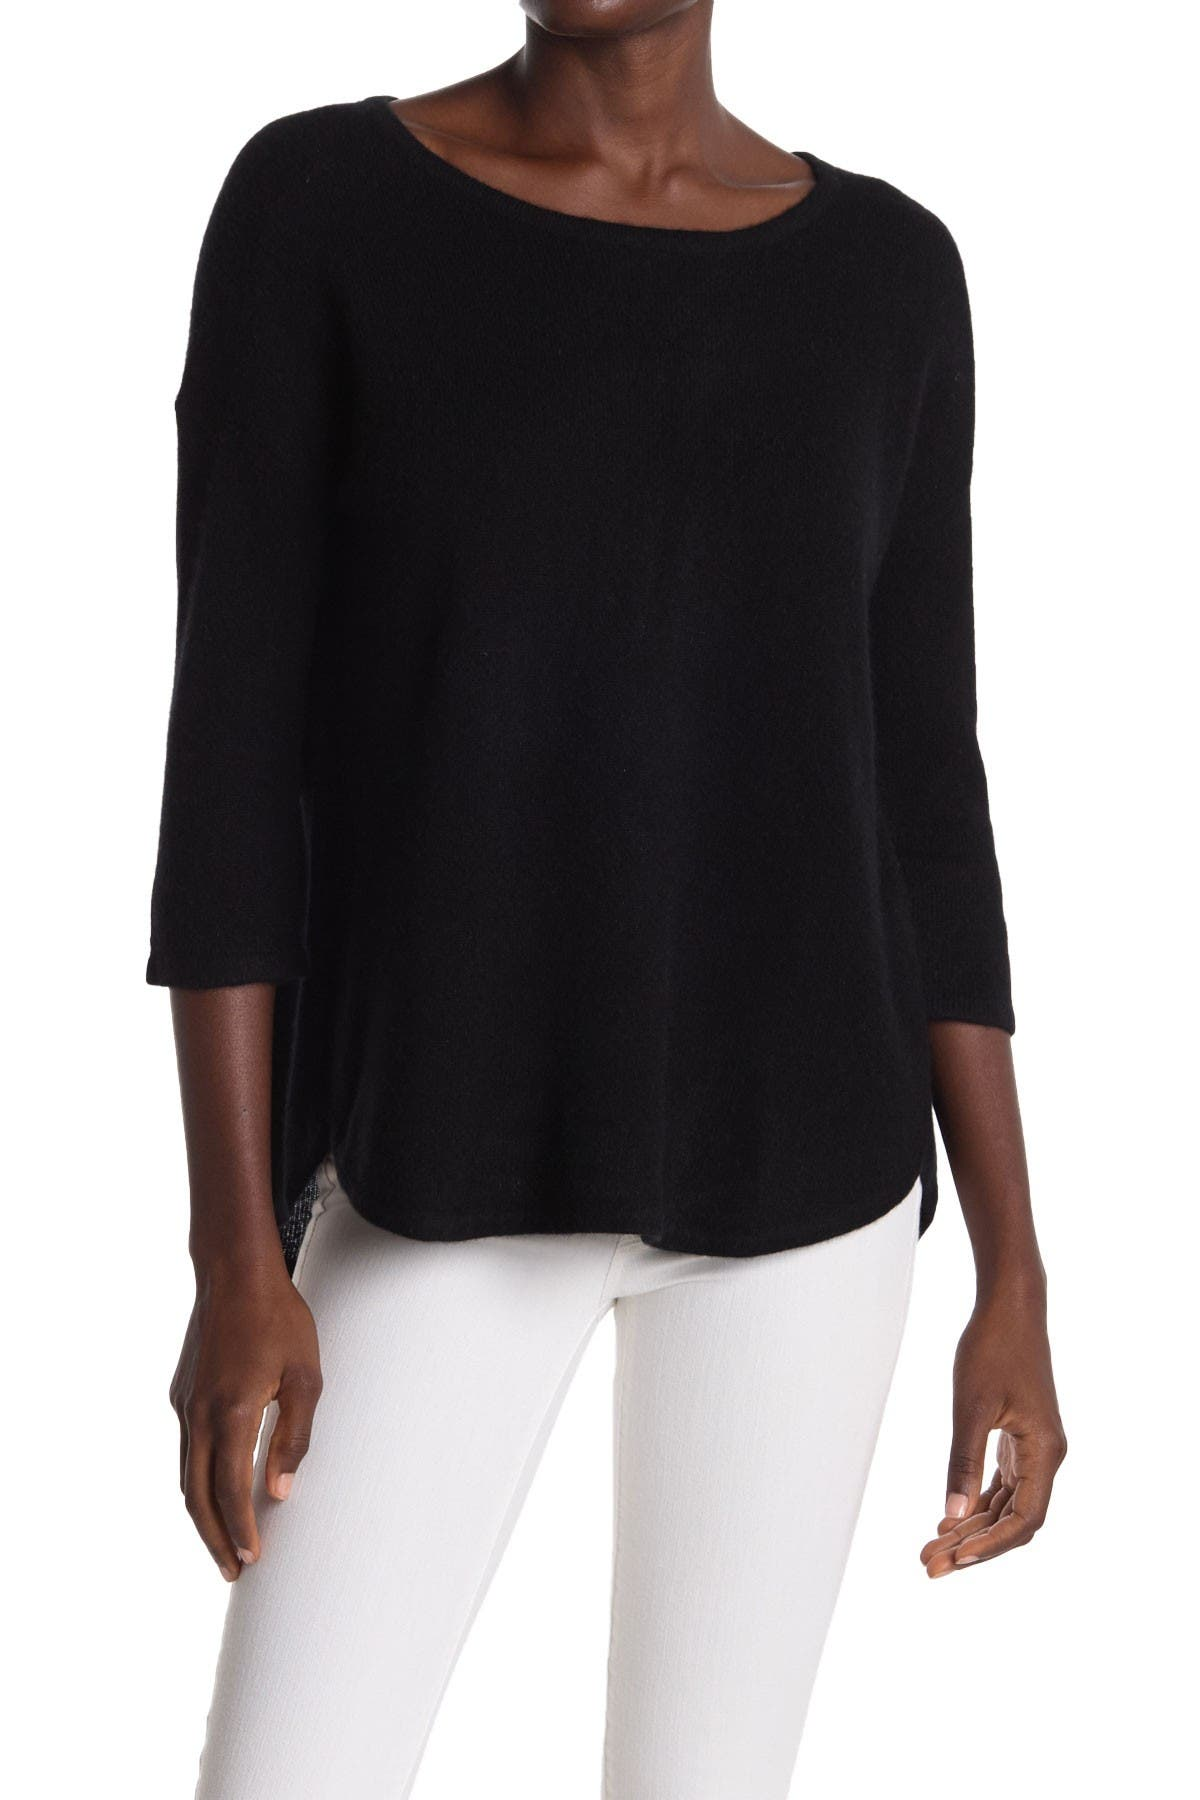 Image of GRIFFEN CASHMERE Boatneck Cashmere Sweater